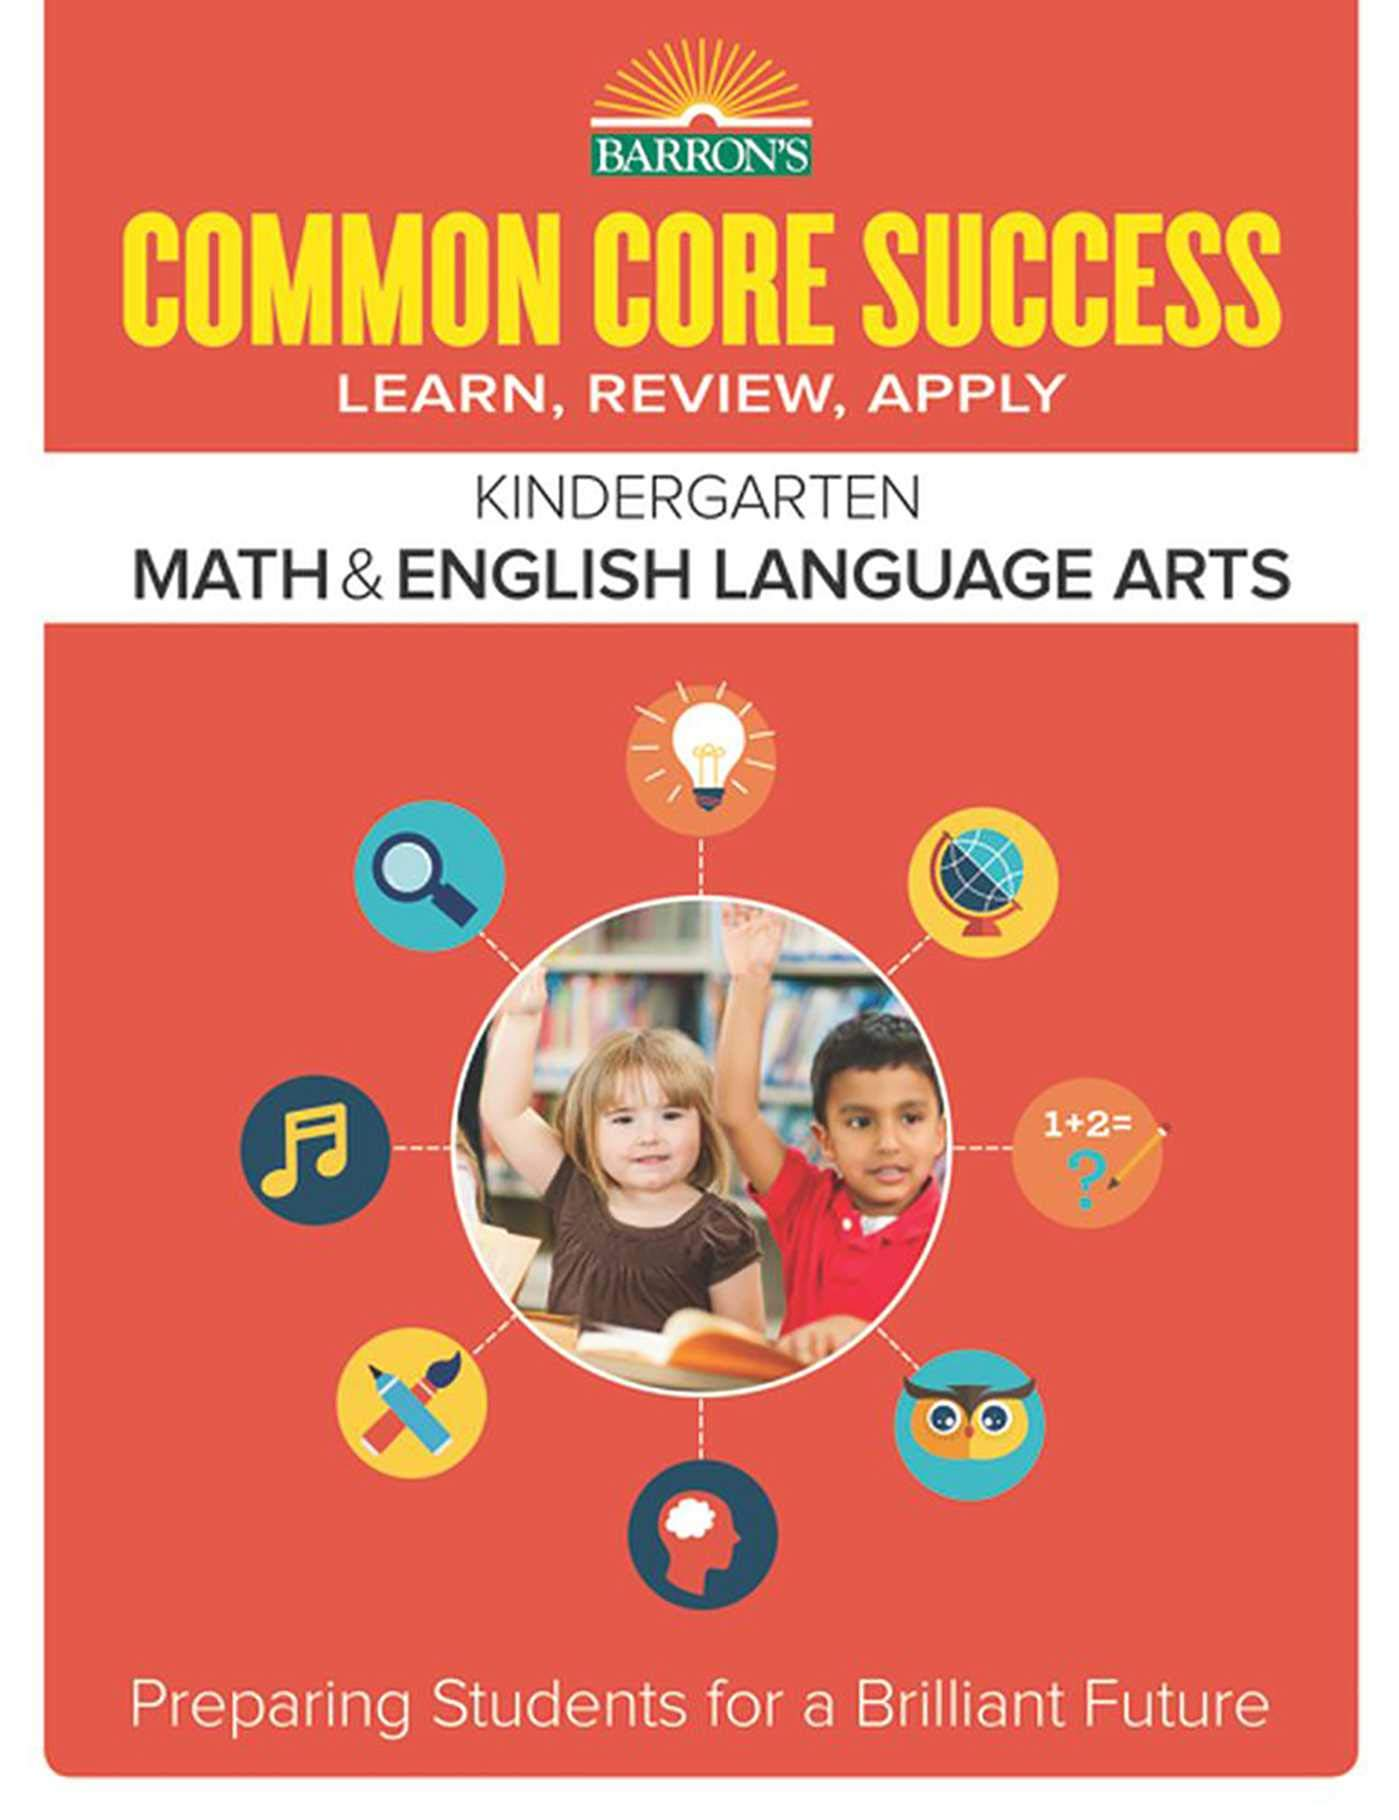 Barron's Common Core Success Kindergarten Math & English Language Arts: Preparing Students for a Brilliant Future by Barron s Educational Series